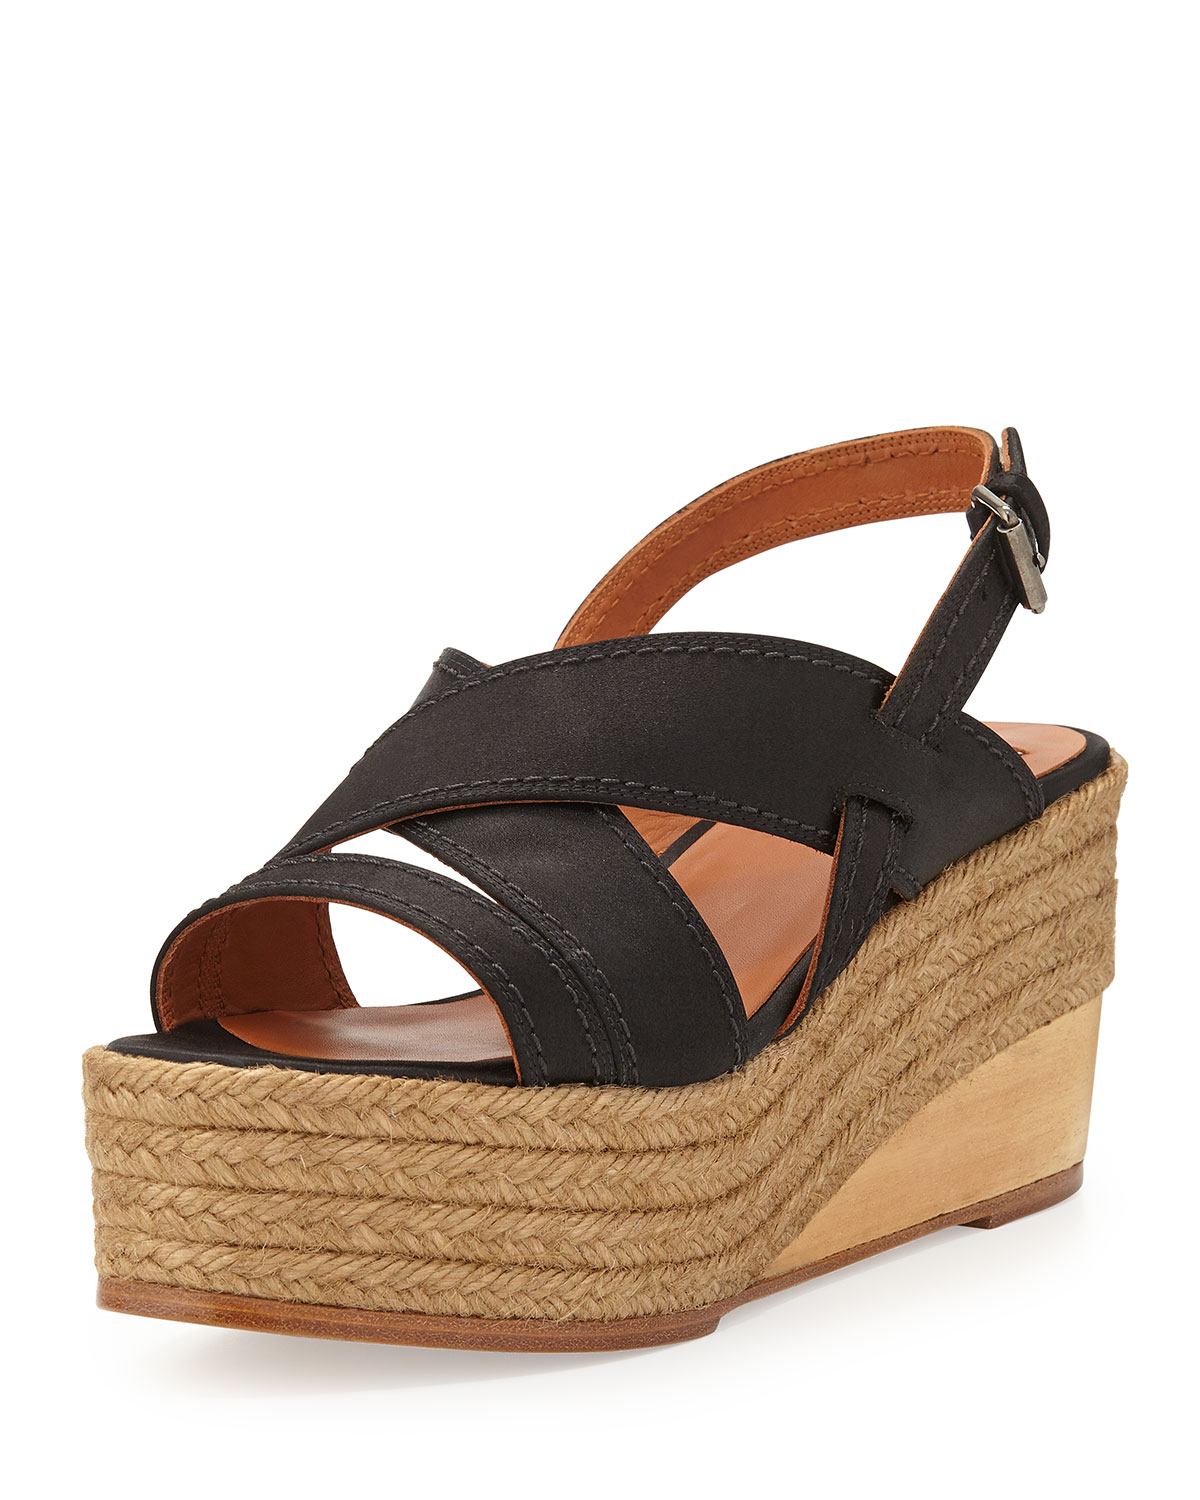 Satin Espadrille Wedge Sandals